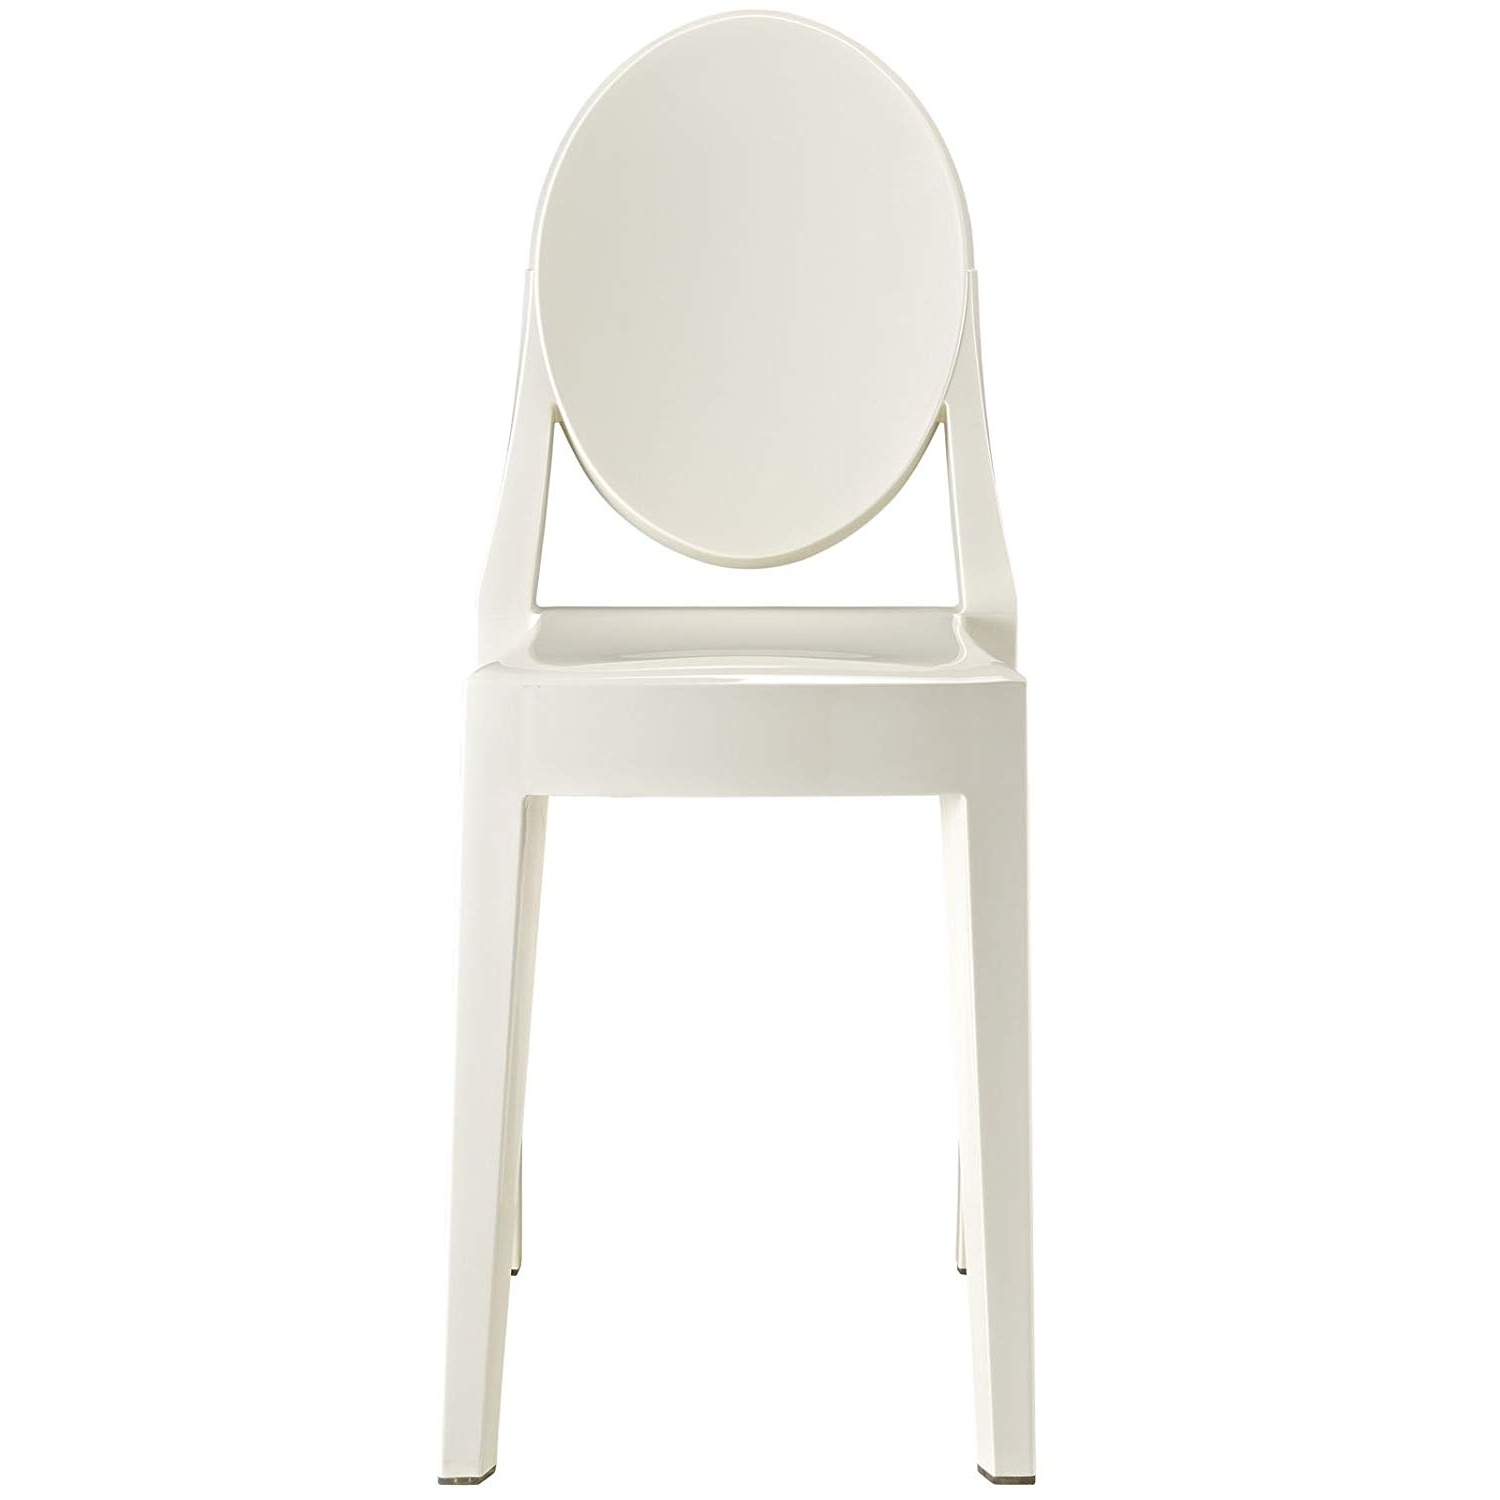 Mandy Paper White Side Chairs Regarding Latest Amazon – Modway Casper Modern Acrylic Dining Side Chair In White (View 11 of 20)